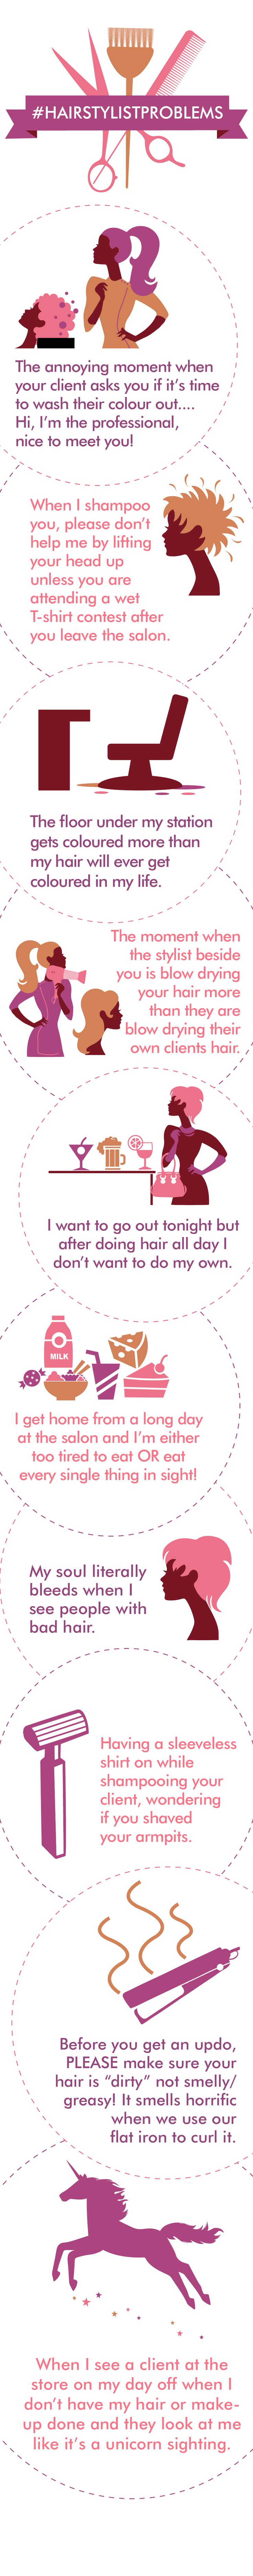 #HairstylistProblems | Hairsytlist | hairdresser | salon problems | hair | hair humor